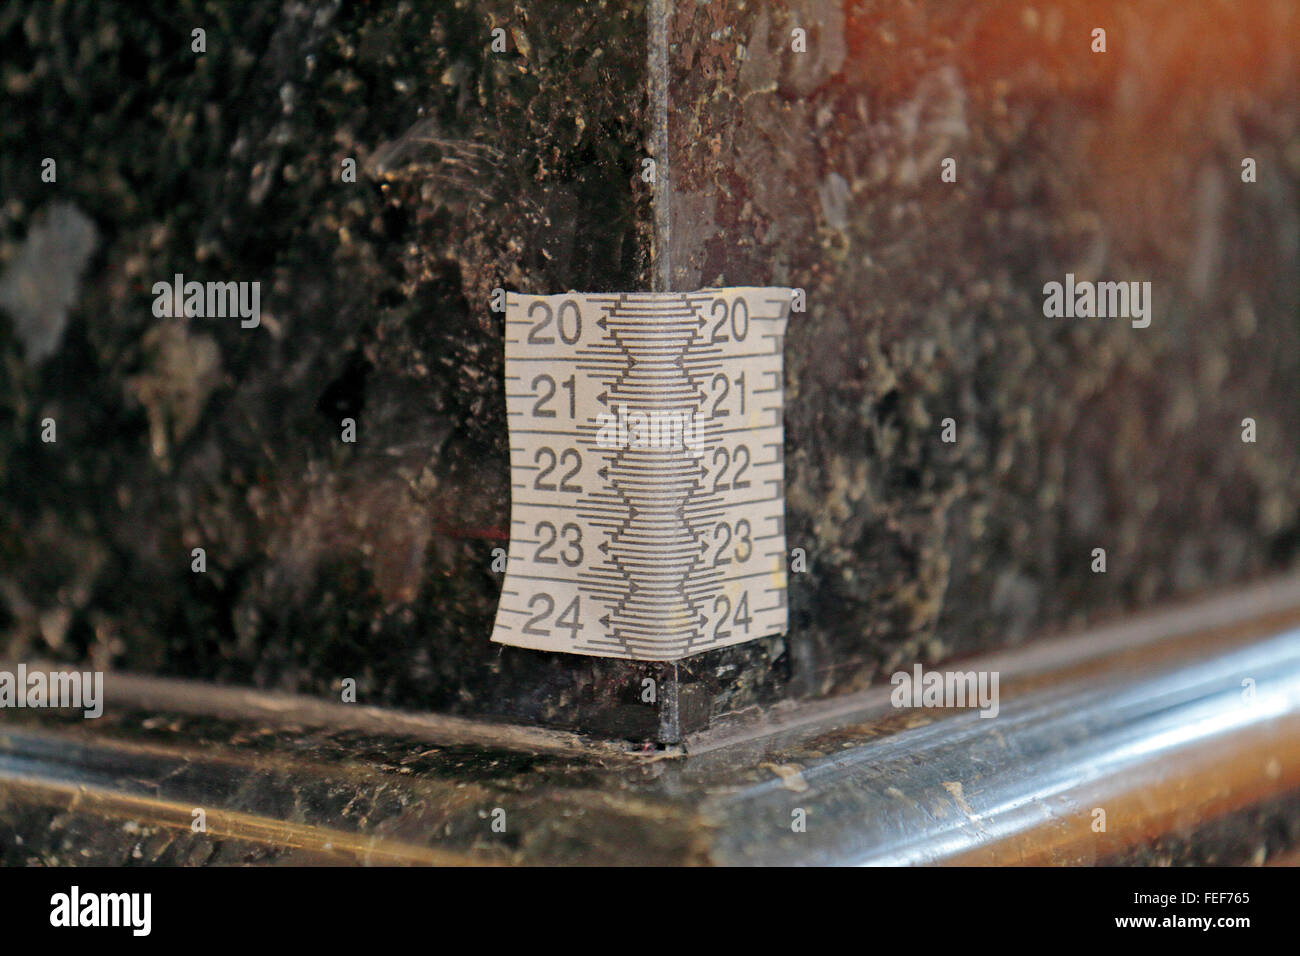 Measurement tape stuck to a marble column inside the Church of the Savior on Spilled Blood, St Petersburg, Russia. - Stock Image